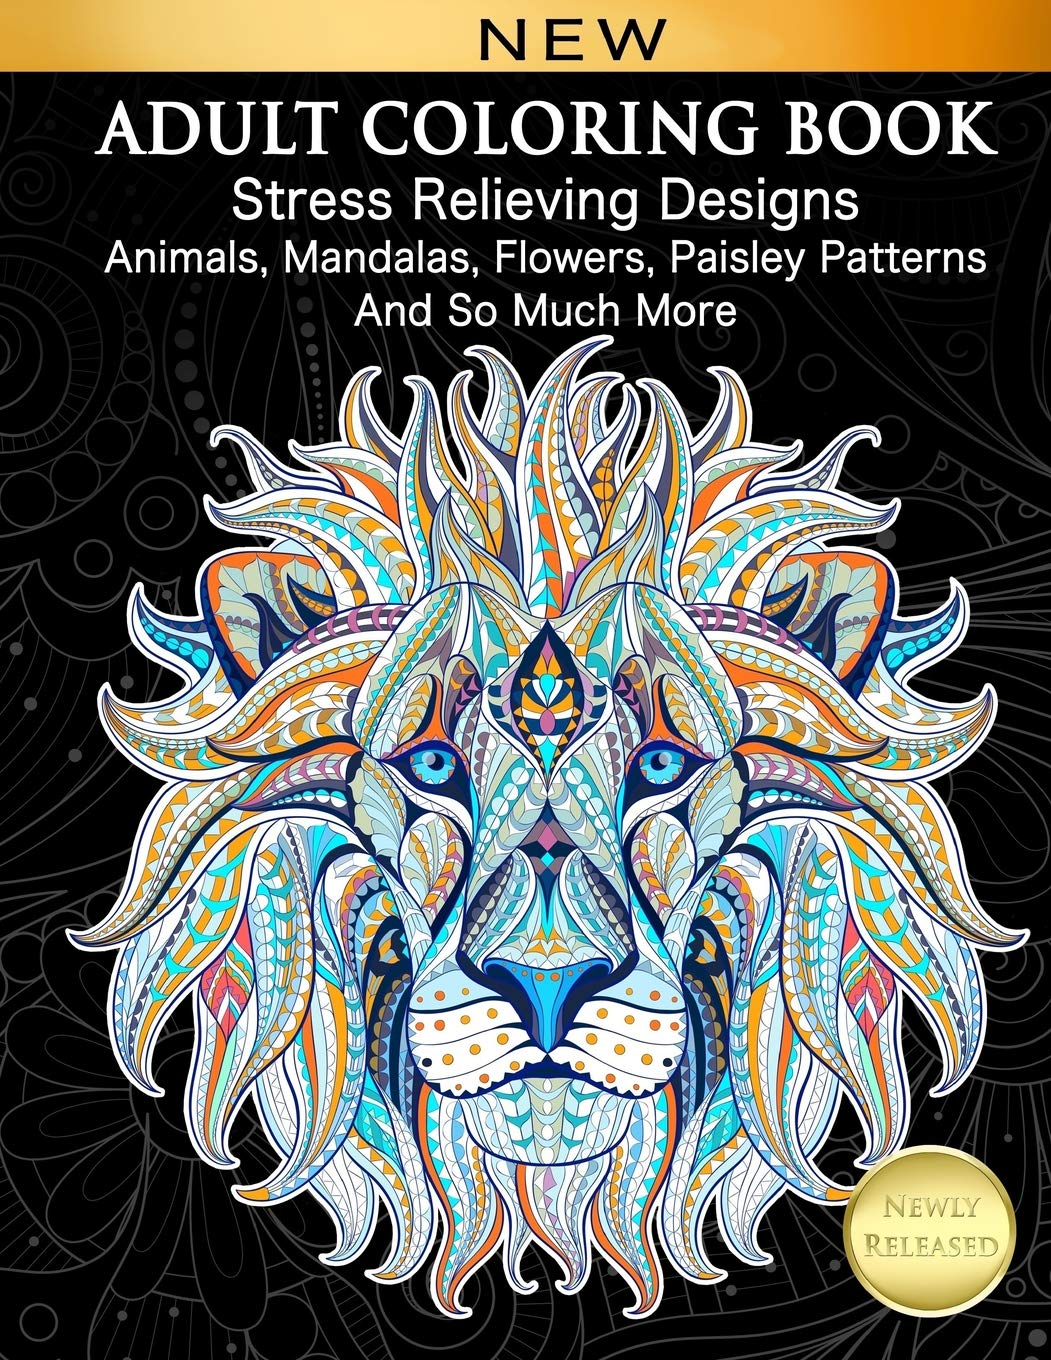 Amazon Com Adult Coloring Book Stress Relieving Designs Animals Mandalas Flowers Paisley Patterns And So Much More Coloring Book For Adults 9781979601733 Elsharouni Cindy Books